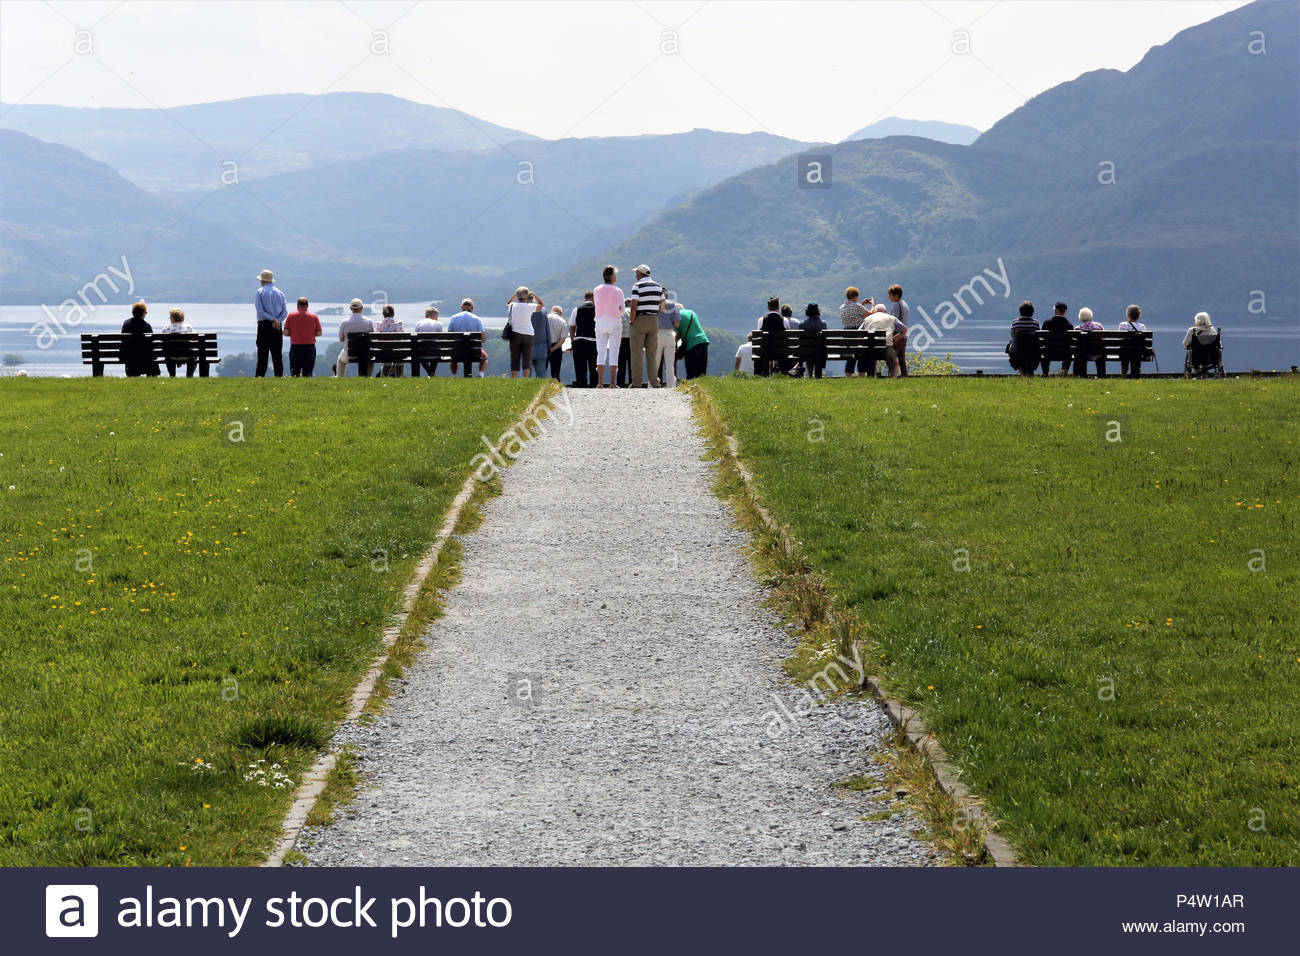 Tourists line up in County kerry, Ireland, to view a beautiful landscape - Stock Image